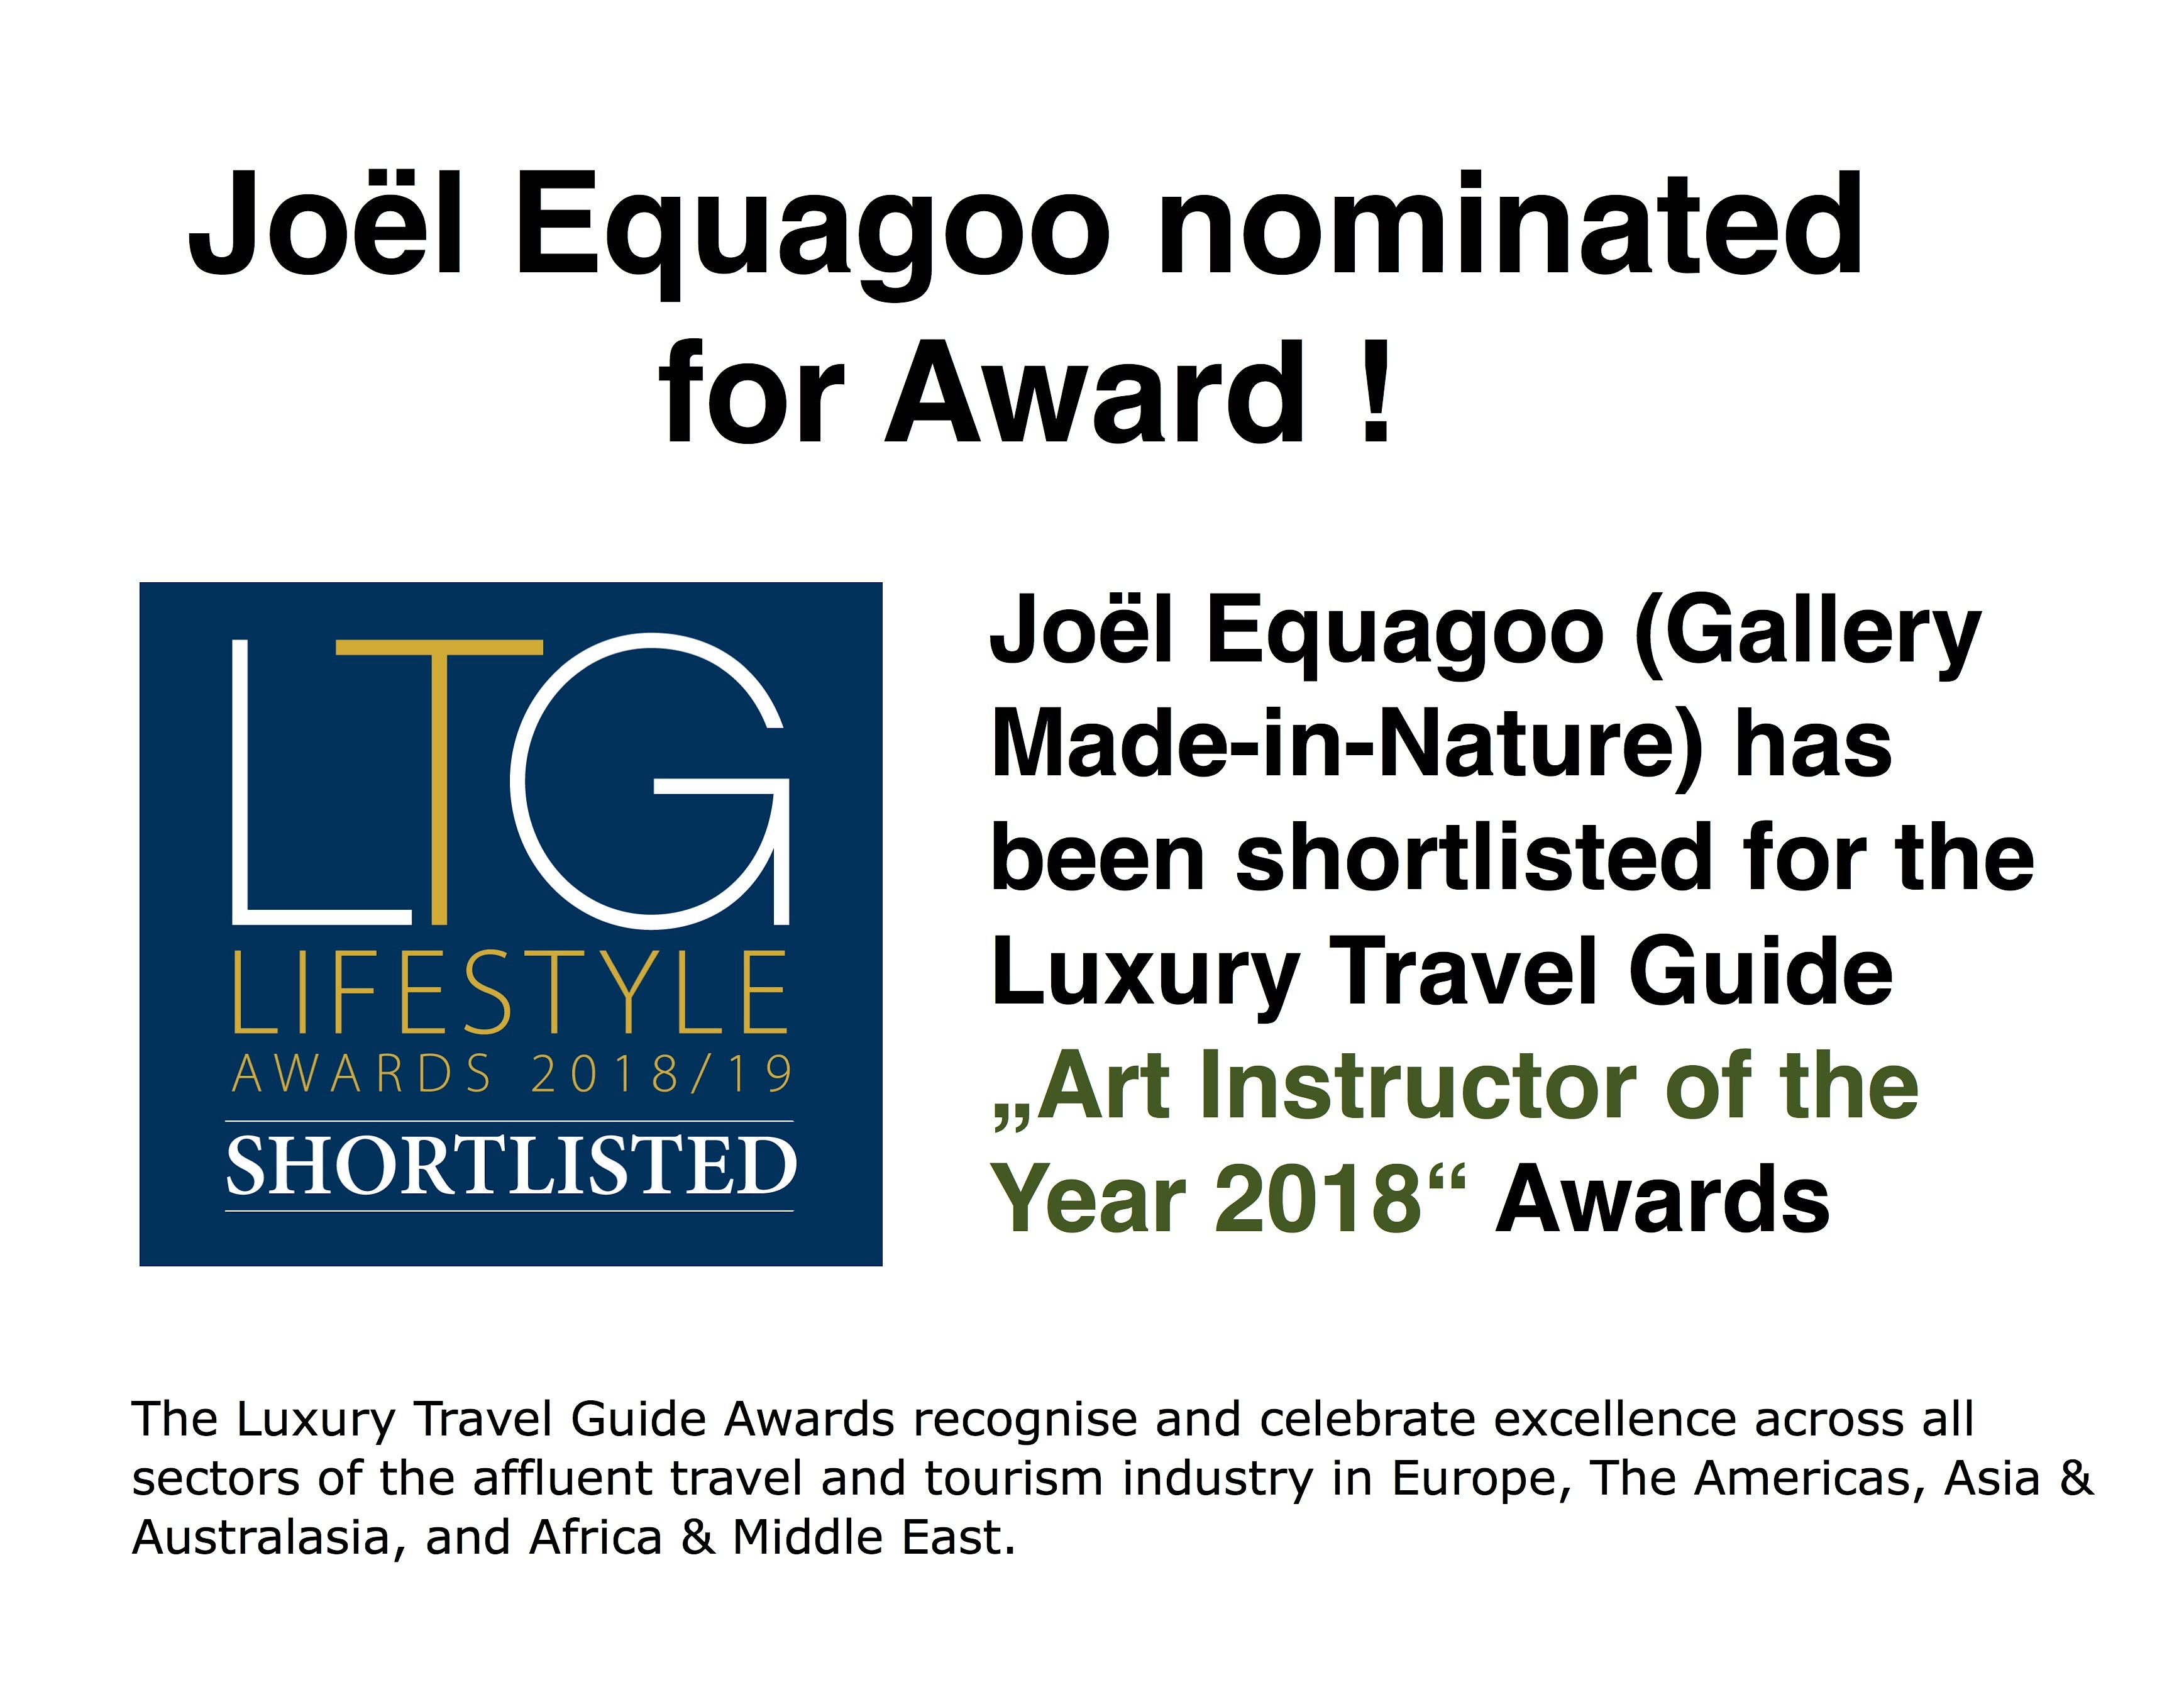 Jol Equagoo artist and designer Switzerland shortlisted for LTG award 2018jpgjpg